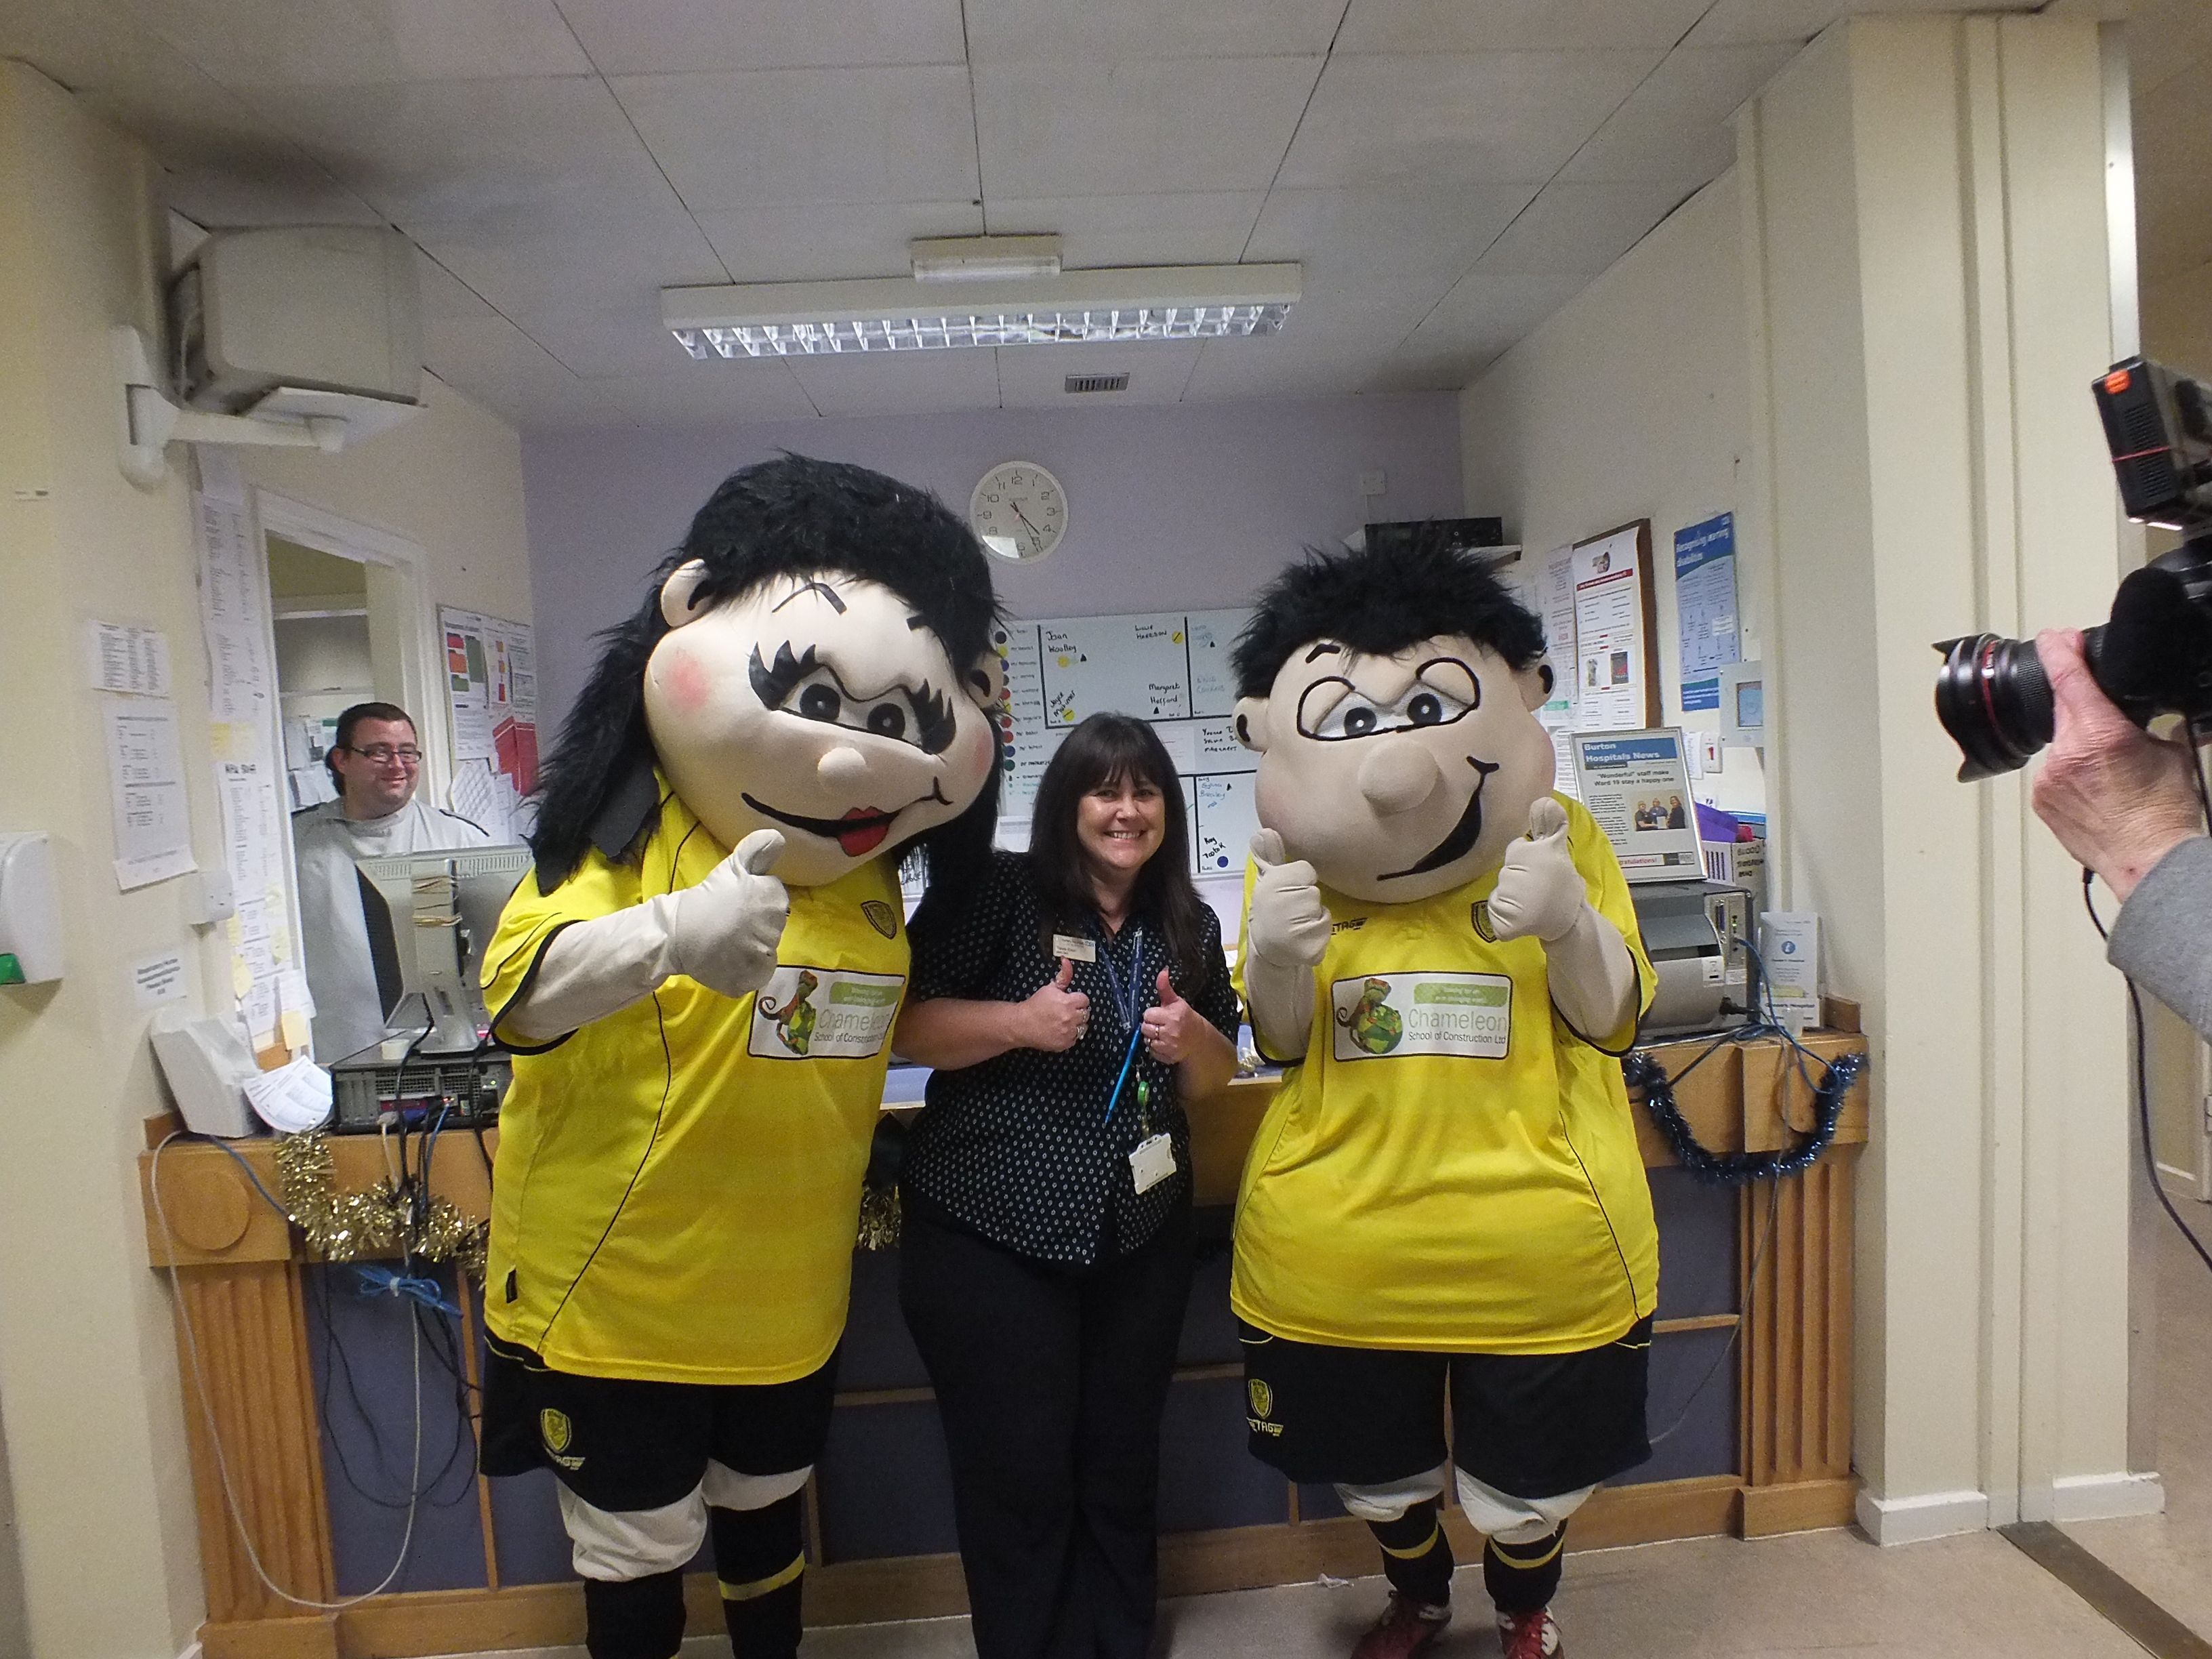 best ideas about burton albion fc risborough ward clerk tracey elson burton albion football club mascots billy and betty brewer during a